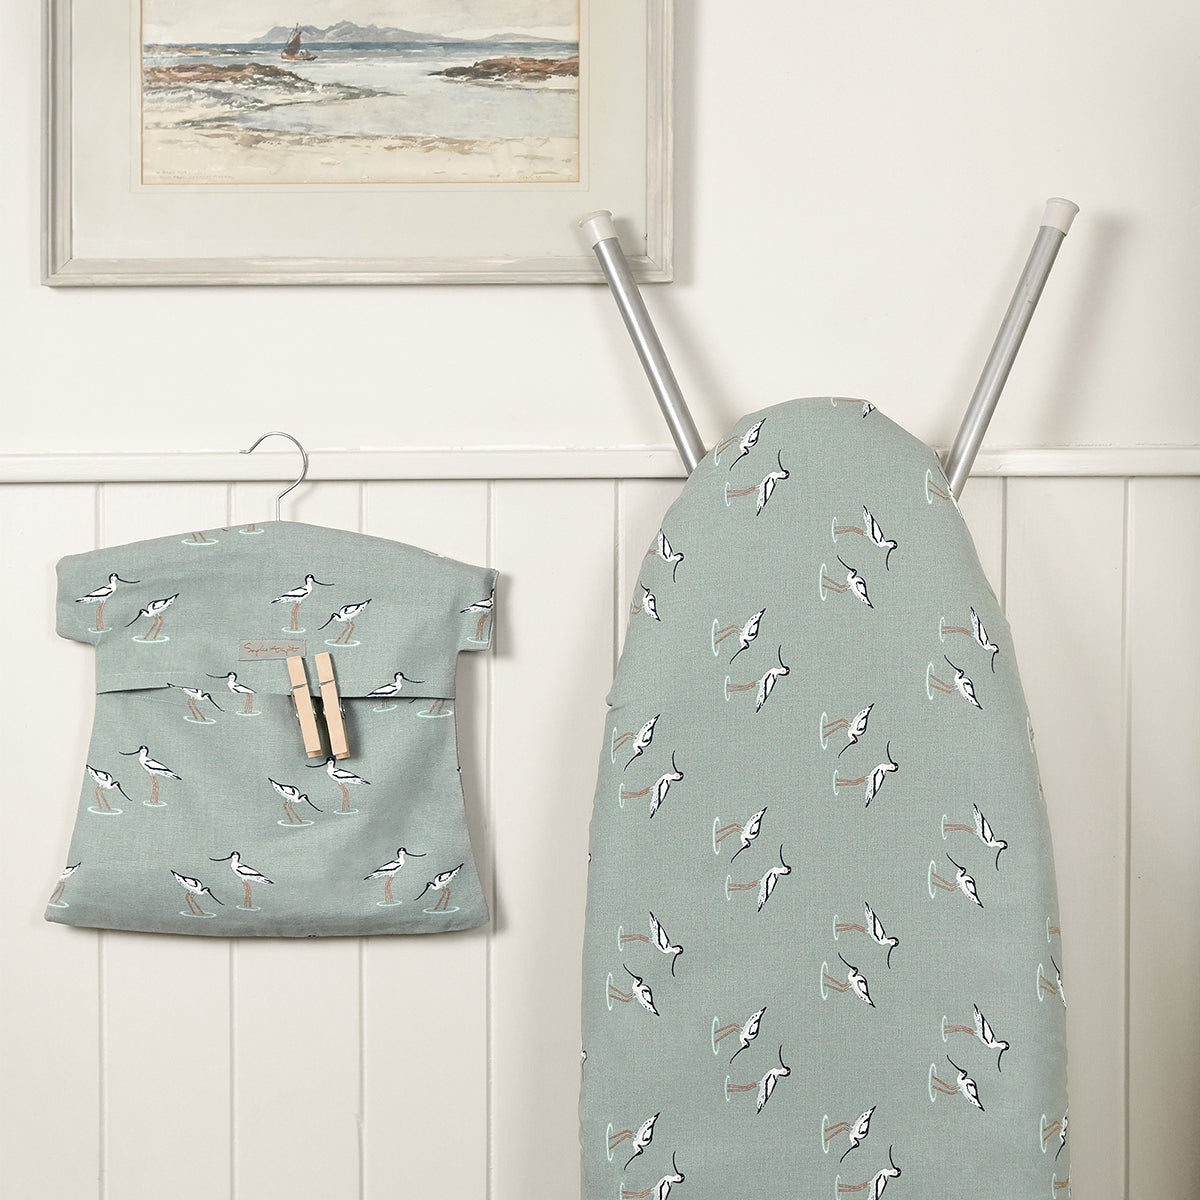 Coastal Birds Ironing Board Cover